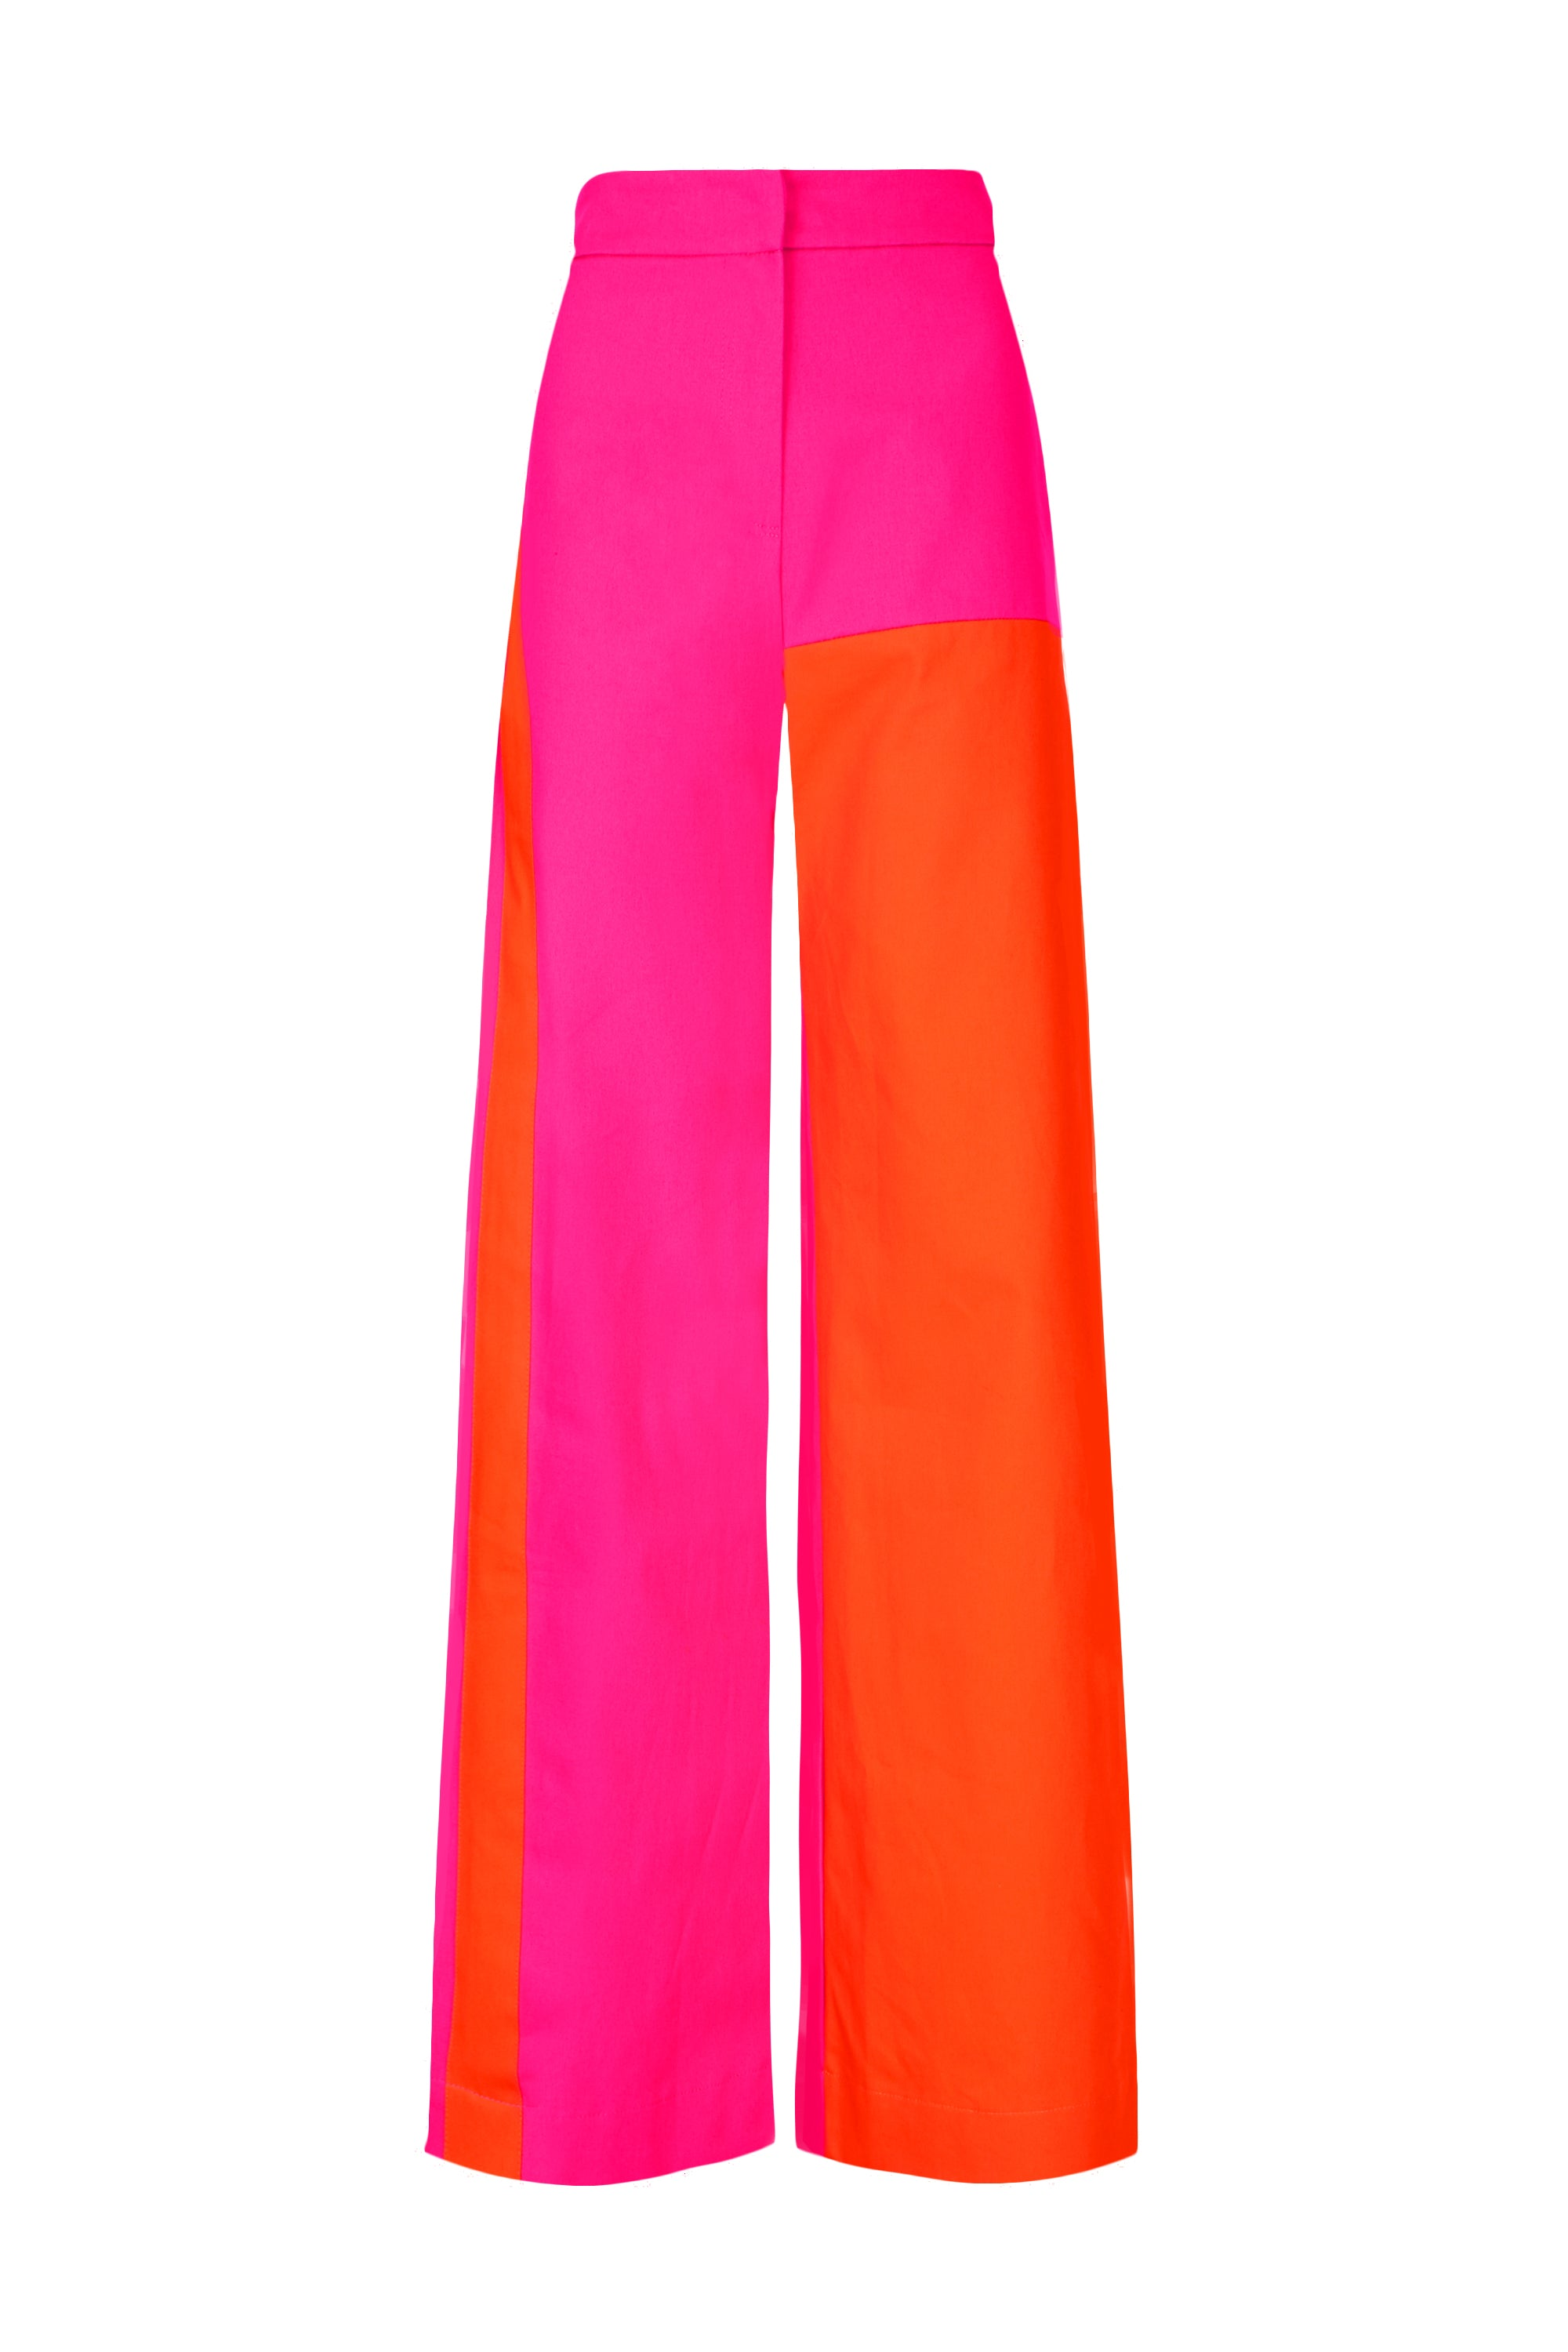 The Colour Block Trouser - Pink & Orange Cotton - SERENA BUTE